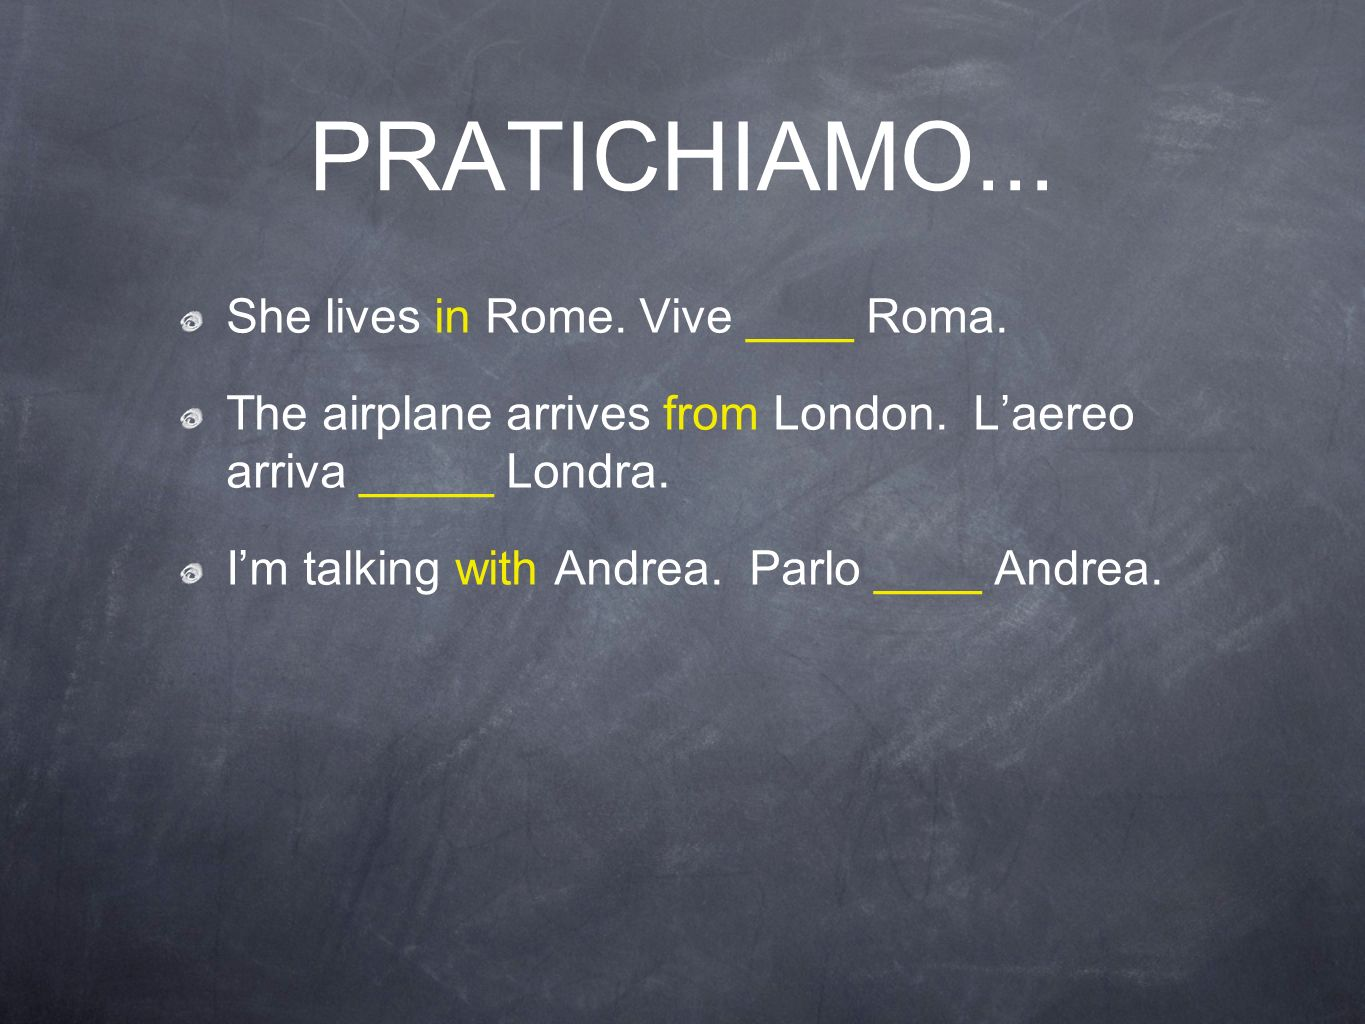 PRATICHIAMO... She lives in Rome. Vive ____ Roma. The airplane arrives from London. Laereo arriva _____ Londra. Im talking with Andrea. Parlo ____ And